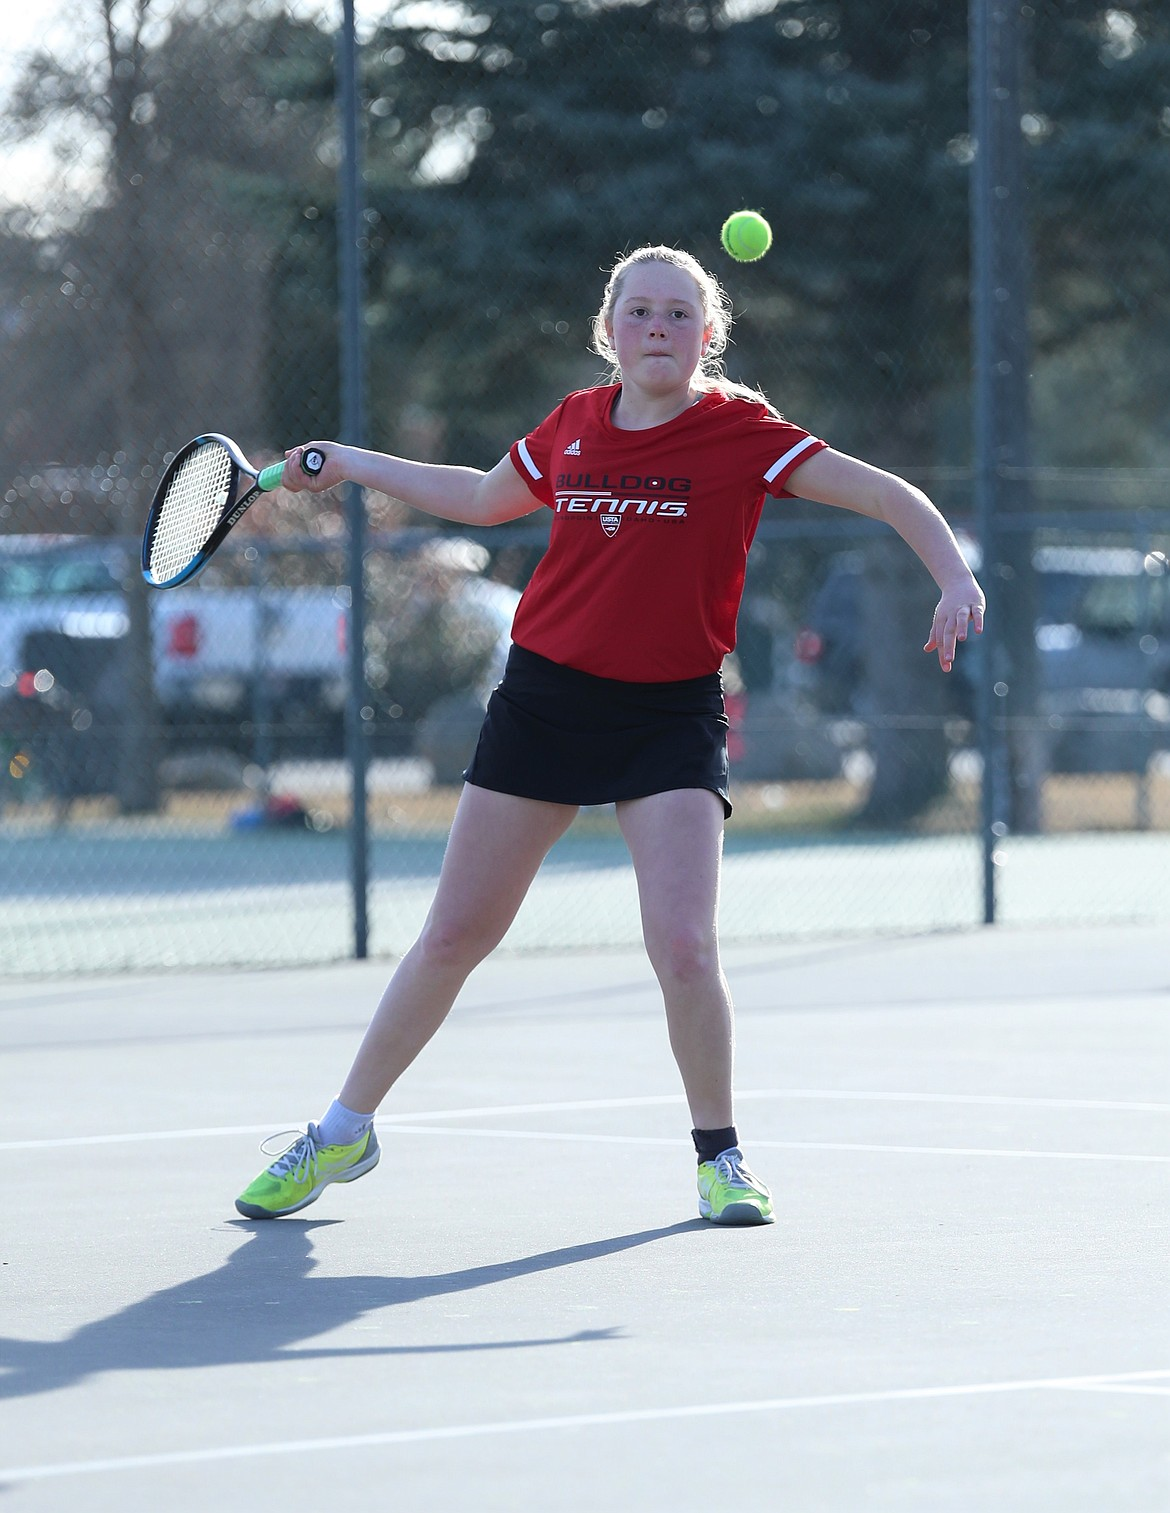 Berkeley Cox lines up her shot to hit a forehand on Wednesday.